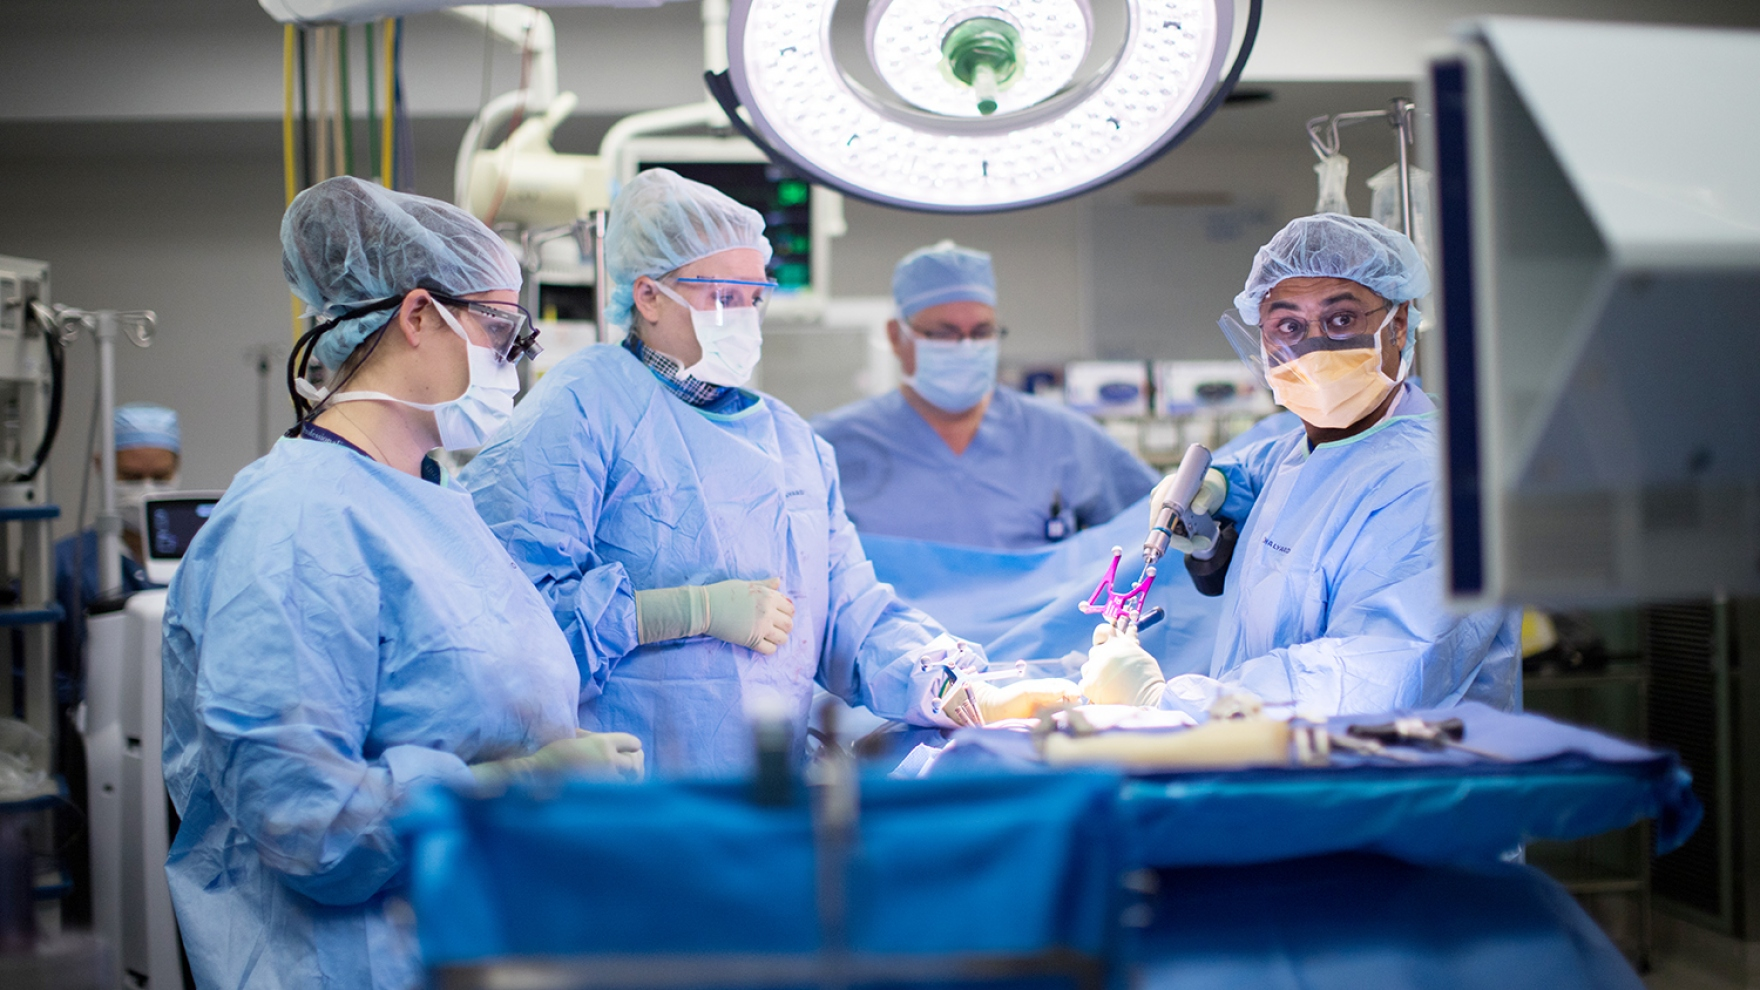 Praveen Mummaneni performs an awake spine surgery with Leslie Robinson, Catherine Miller, and Jeremy Lieberman.